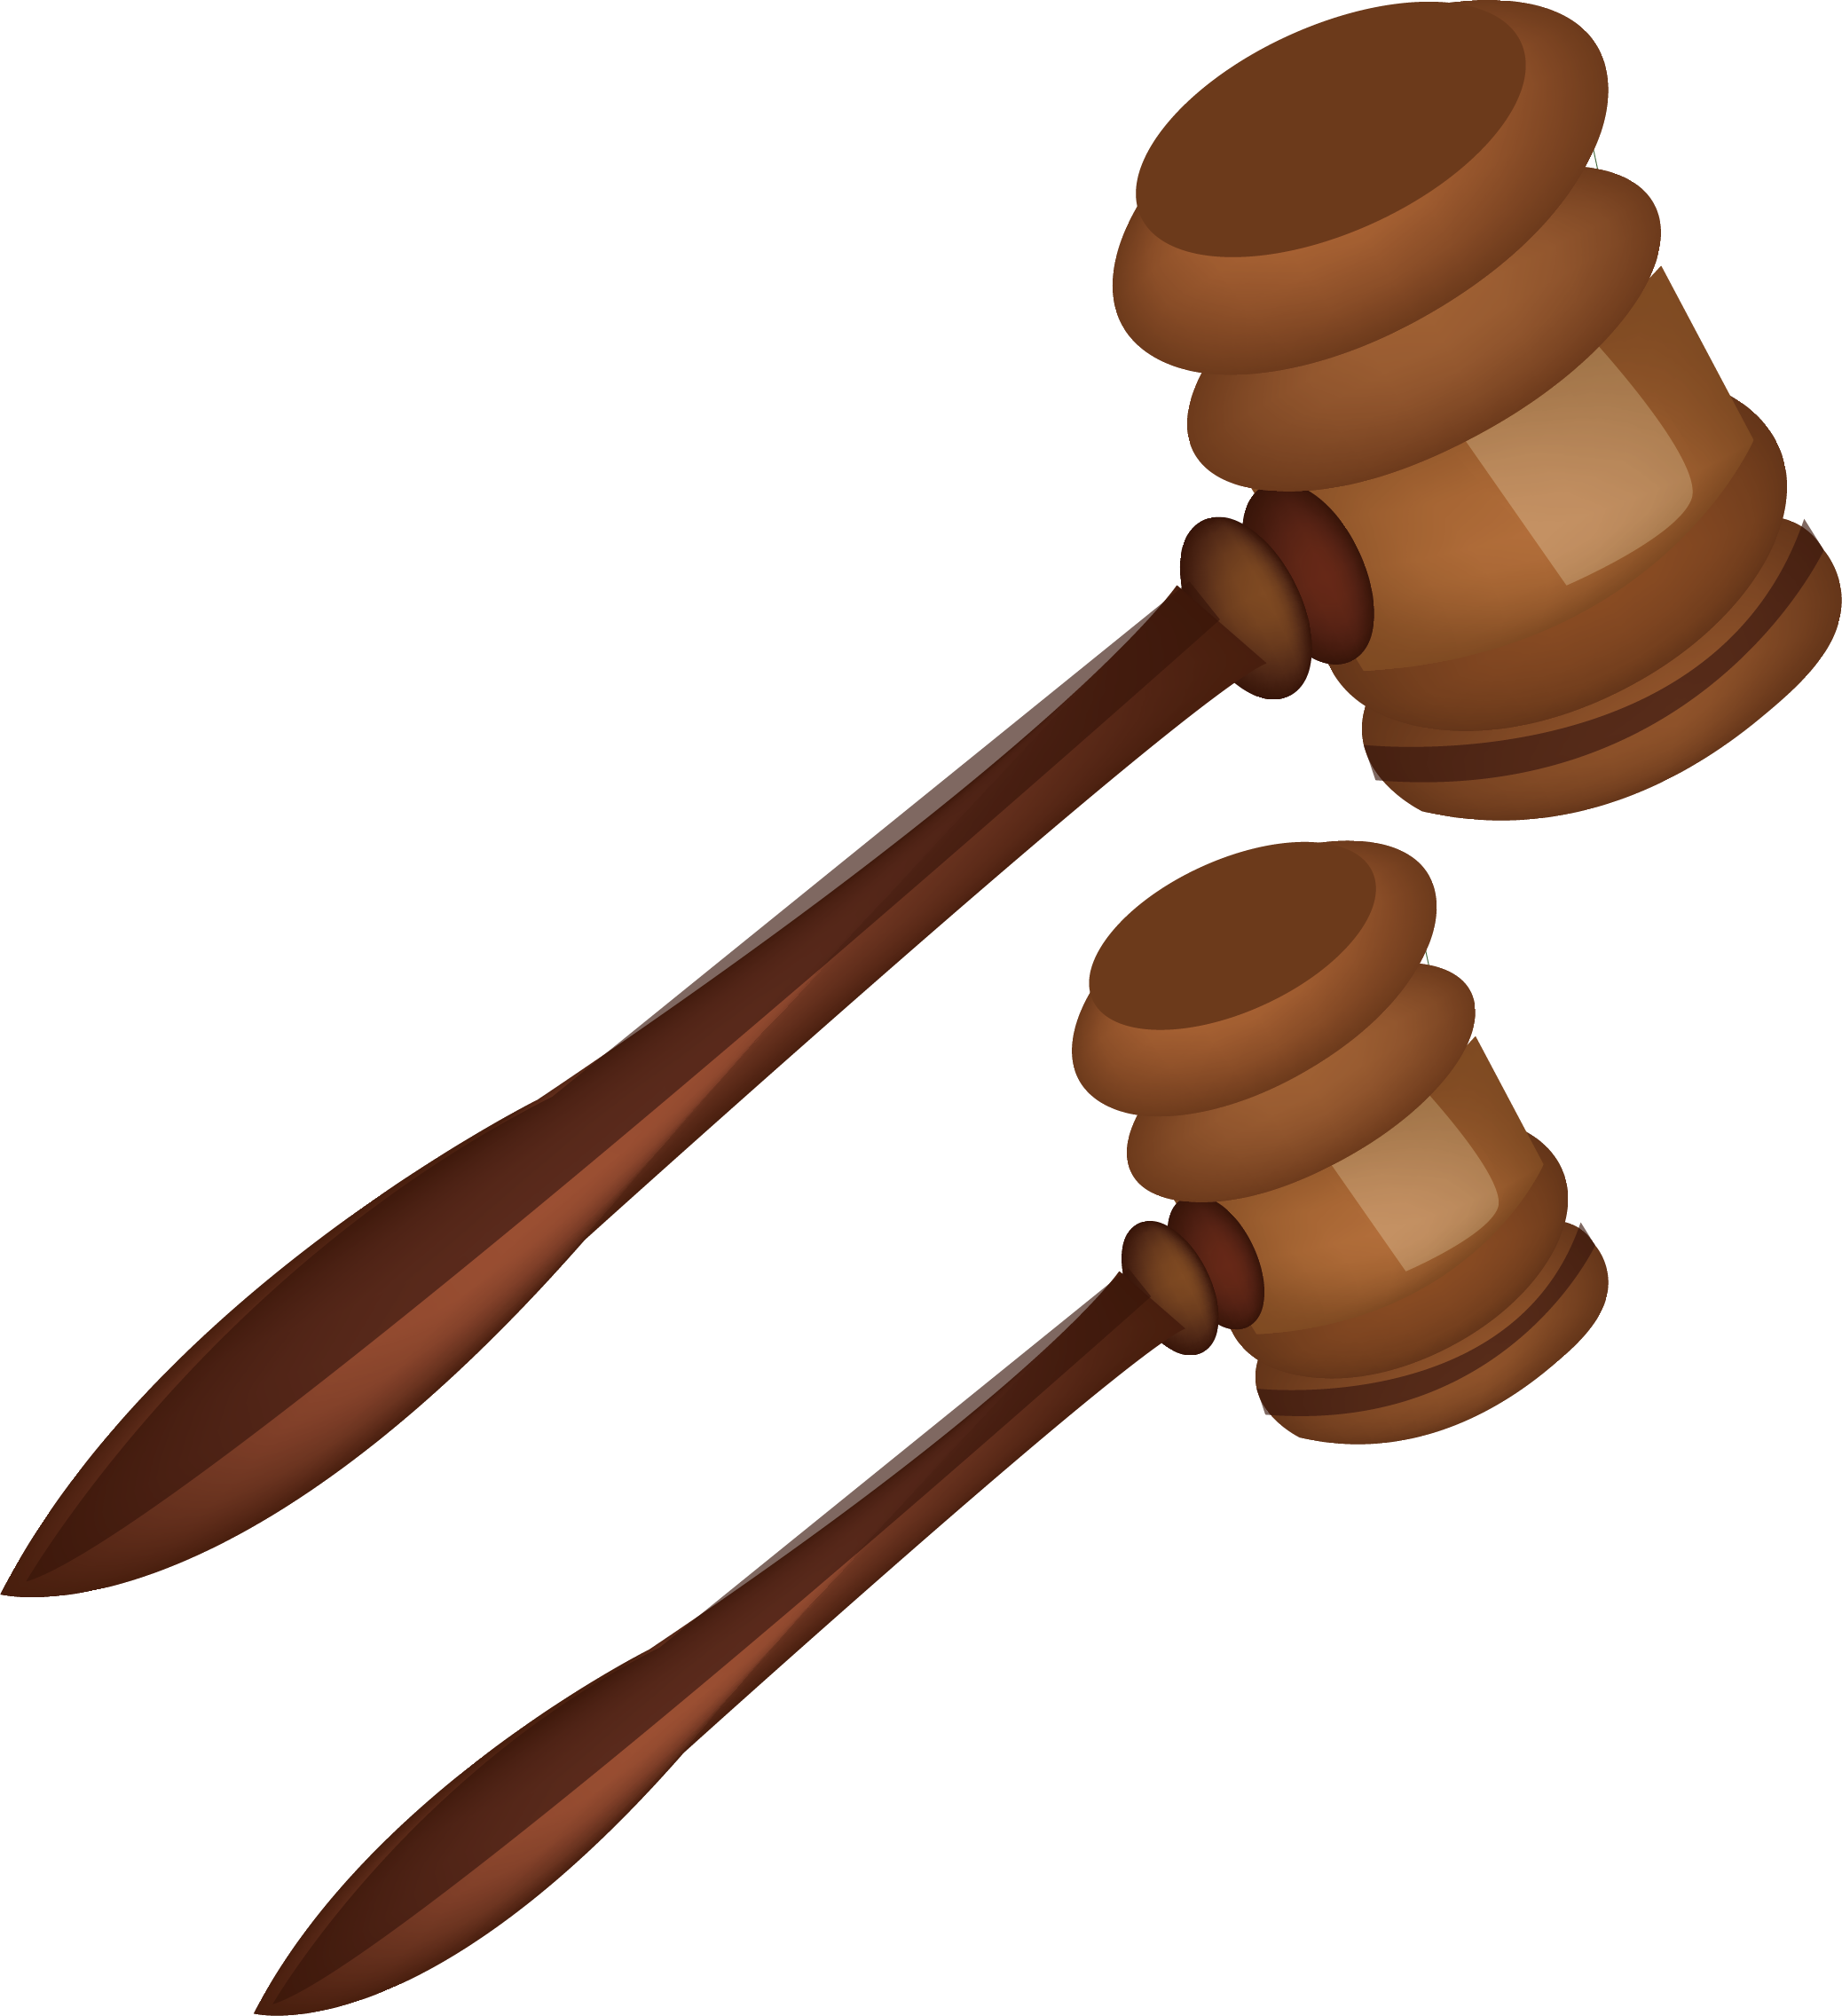 Clipart hammer law and order. Court drawing at getdrawings